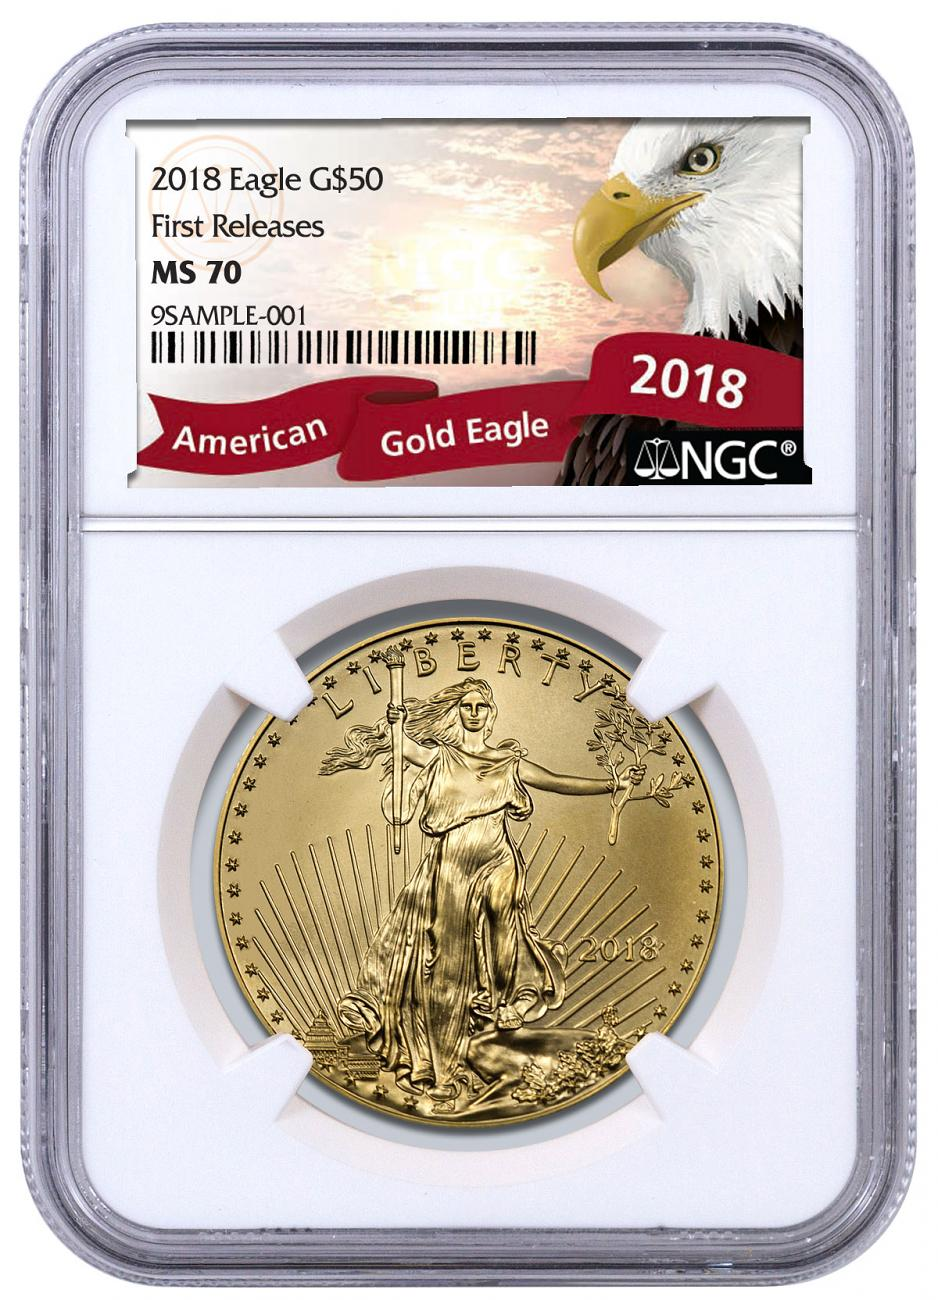 2018 1 oz Gold American Eagle $50 NGC MS70 FR Exclusive Eagle Label